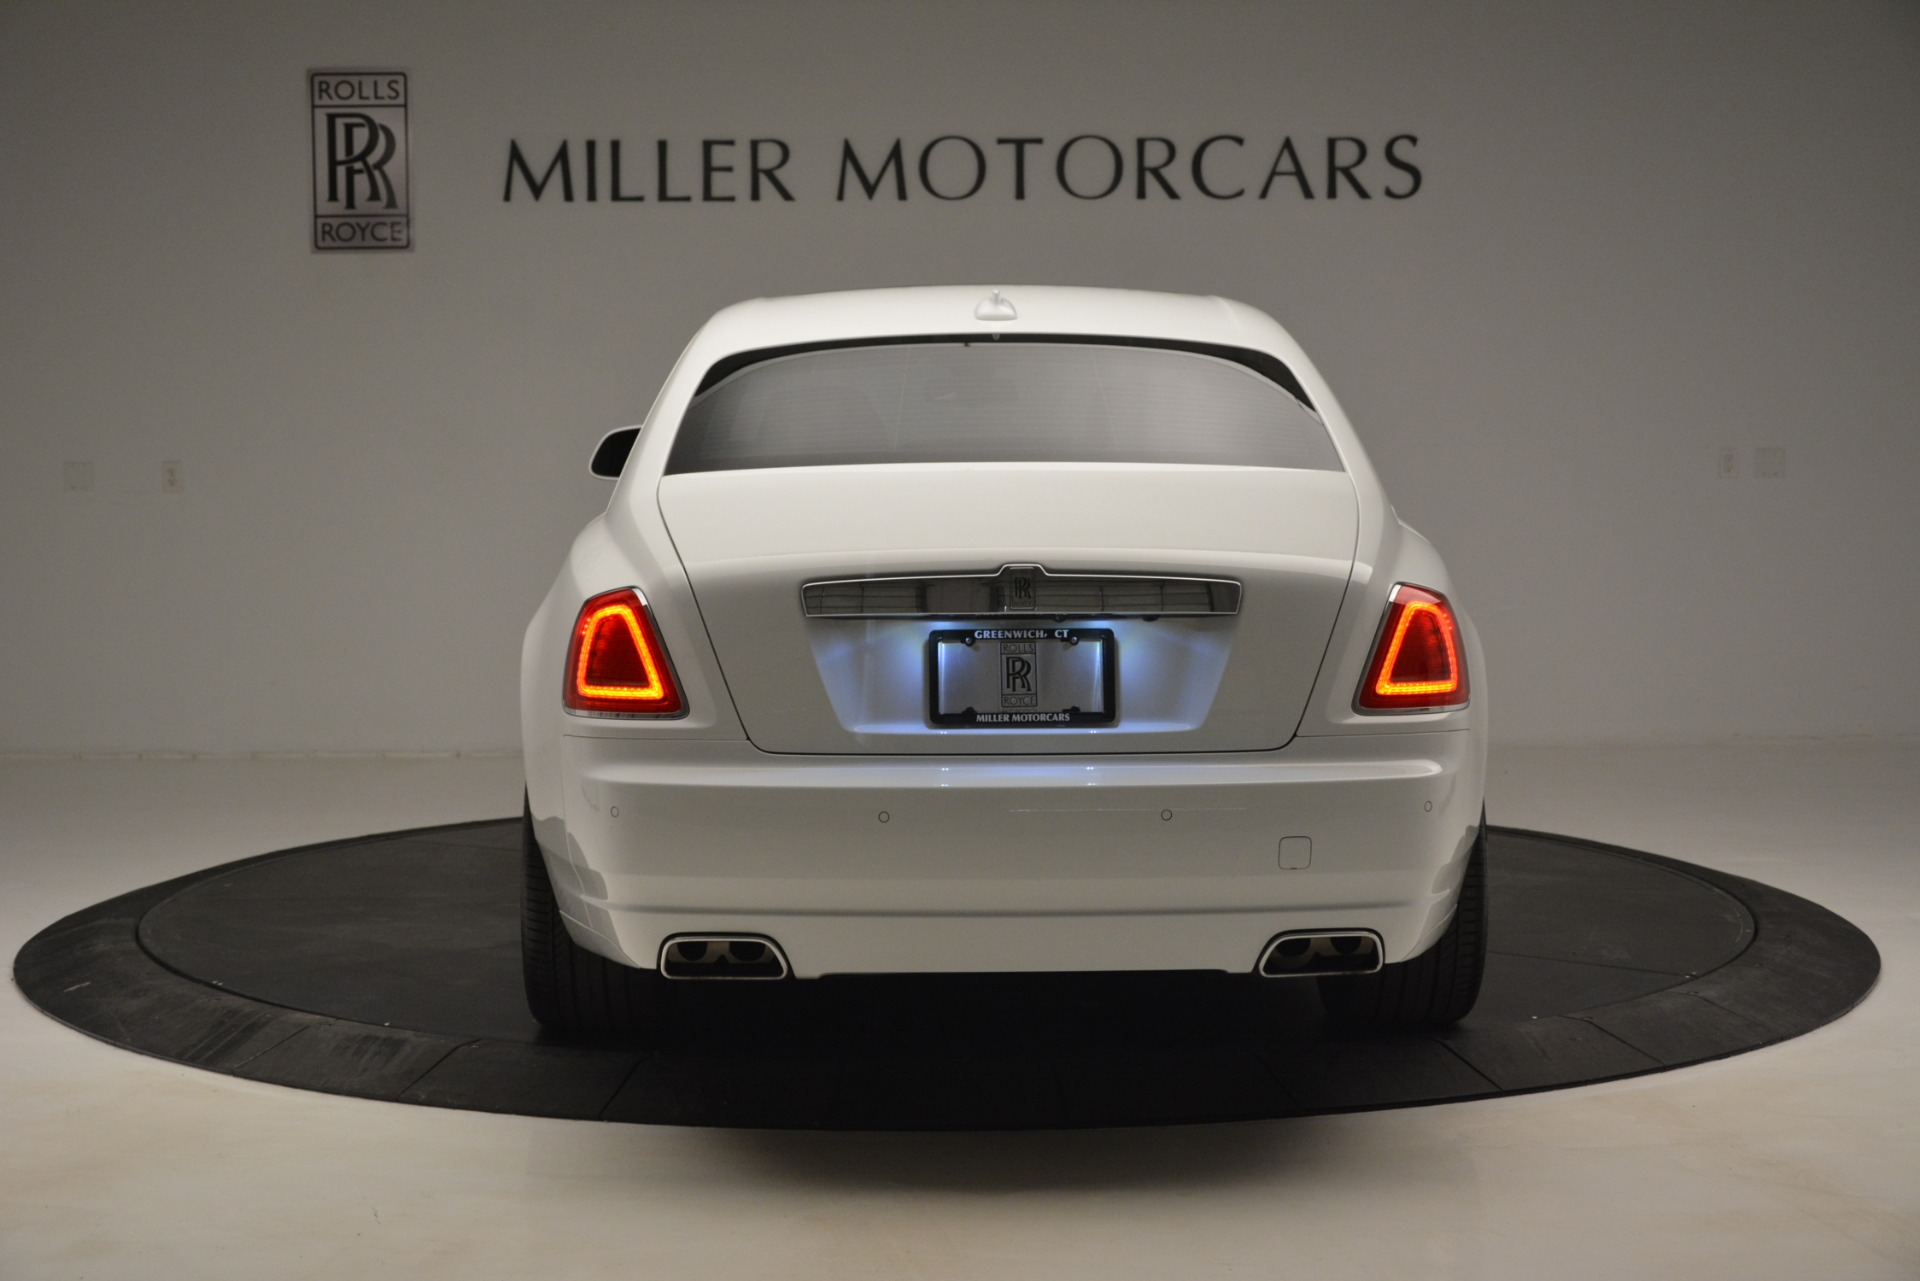 Used 2014 Rolls-Royce Ghost V-Spec For Sale In Westport, CT 2989_p7